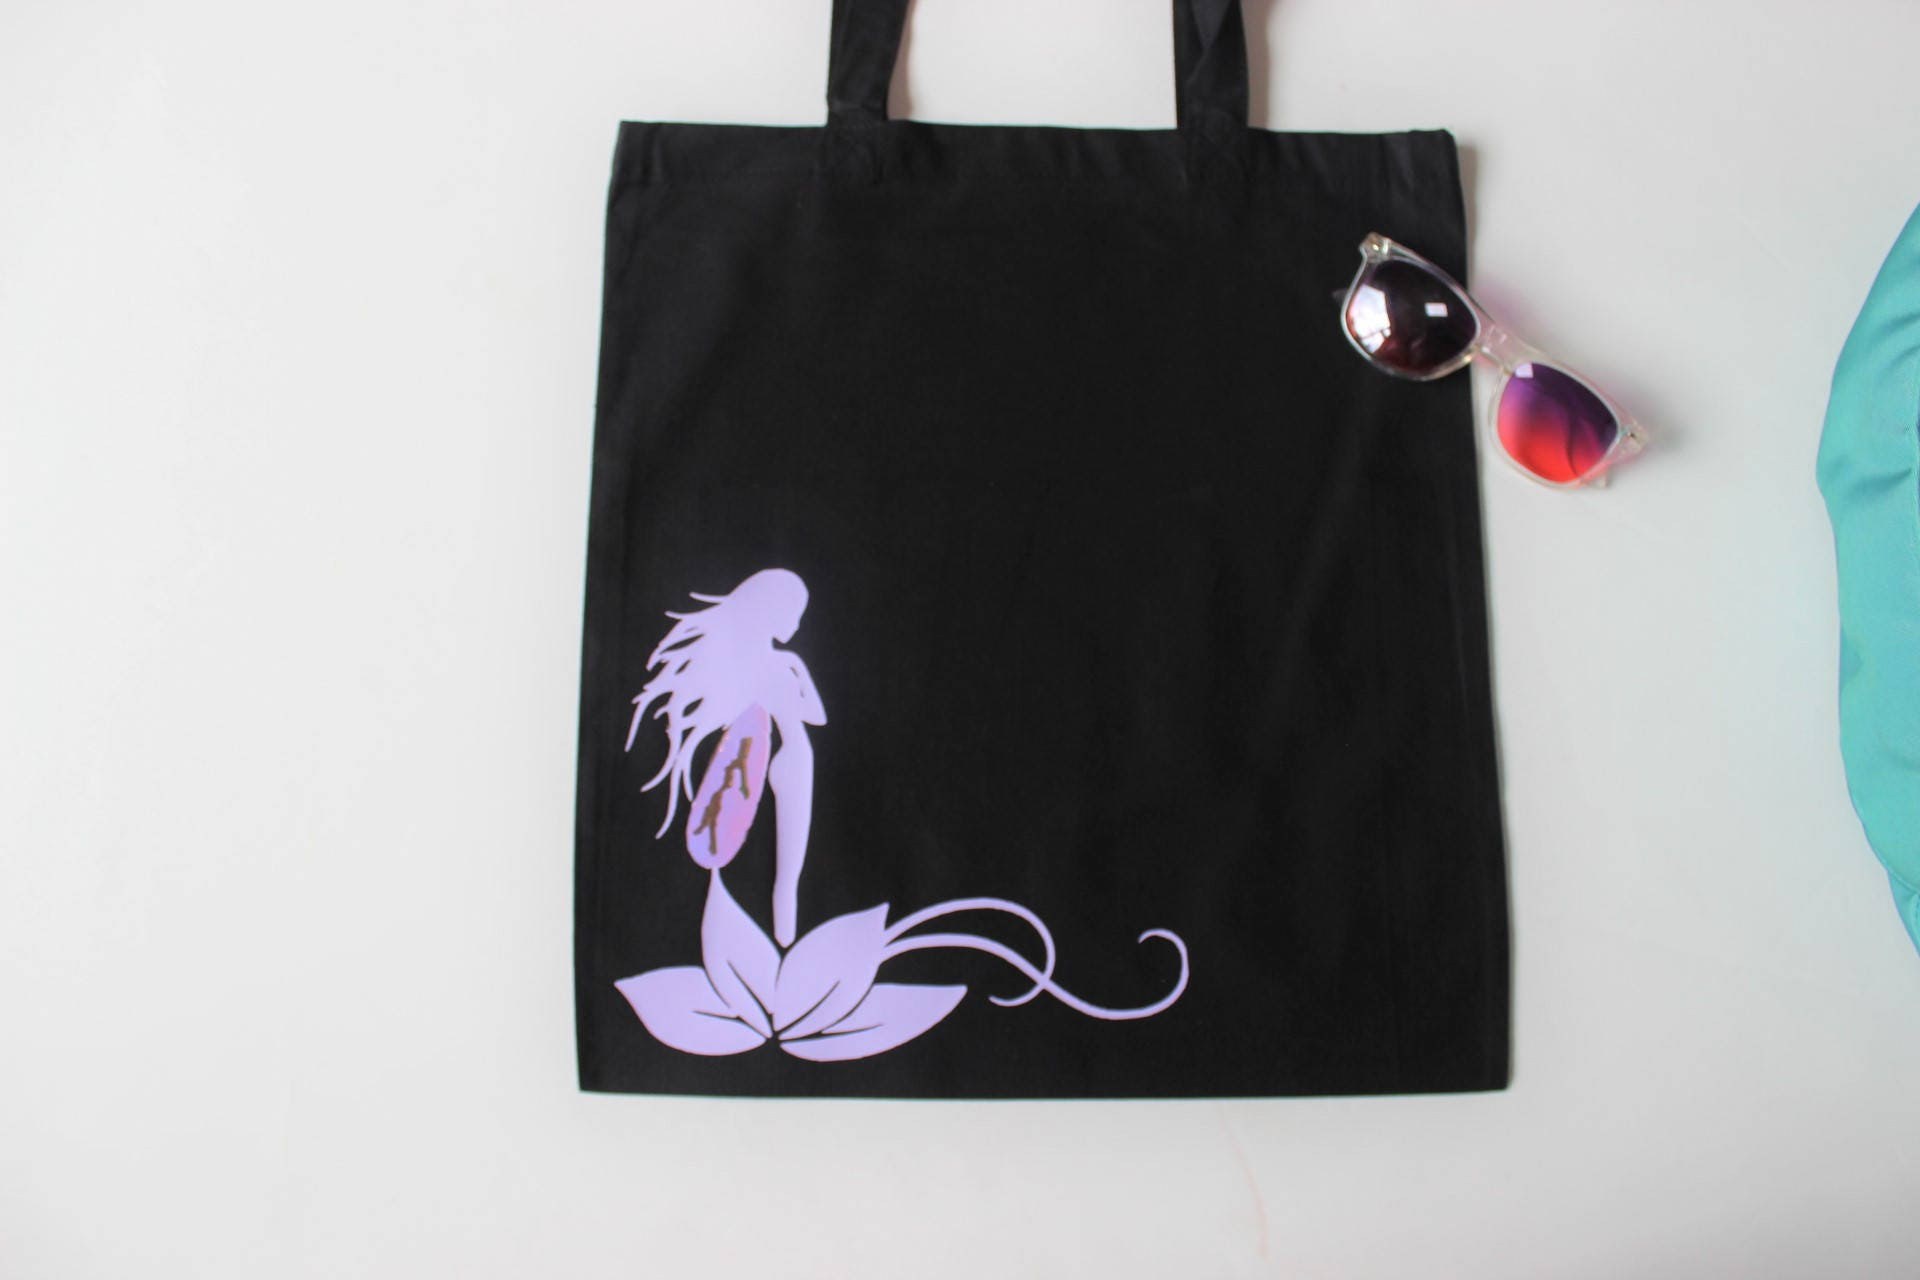 Faeries Bag Lotus Flower Fairy Bag Fantasy Gift Fae Iridescent